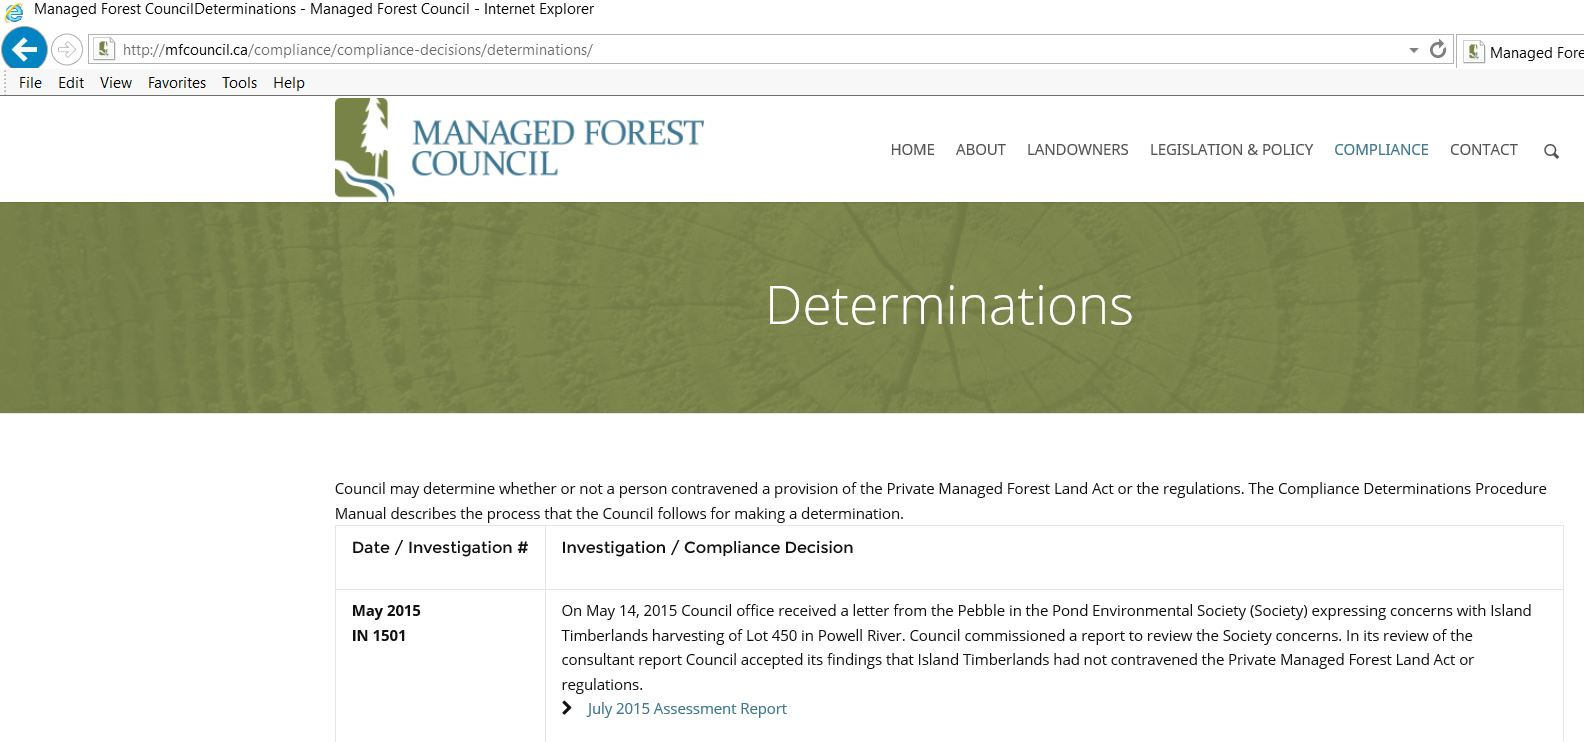 Determination from the Managed Forest Council (MFC), dated July 2015